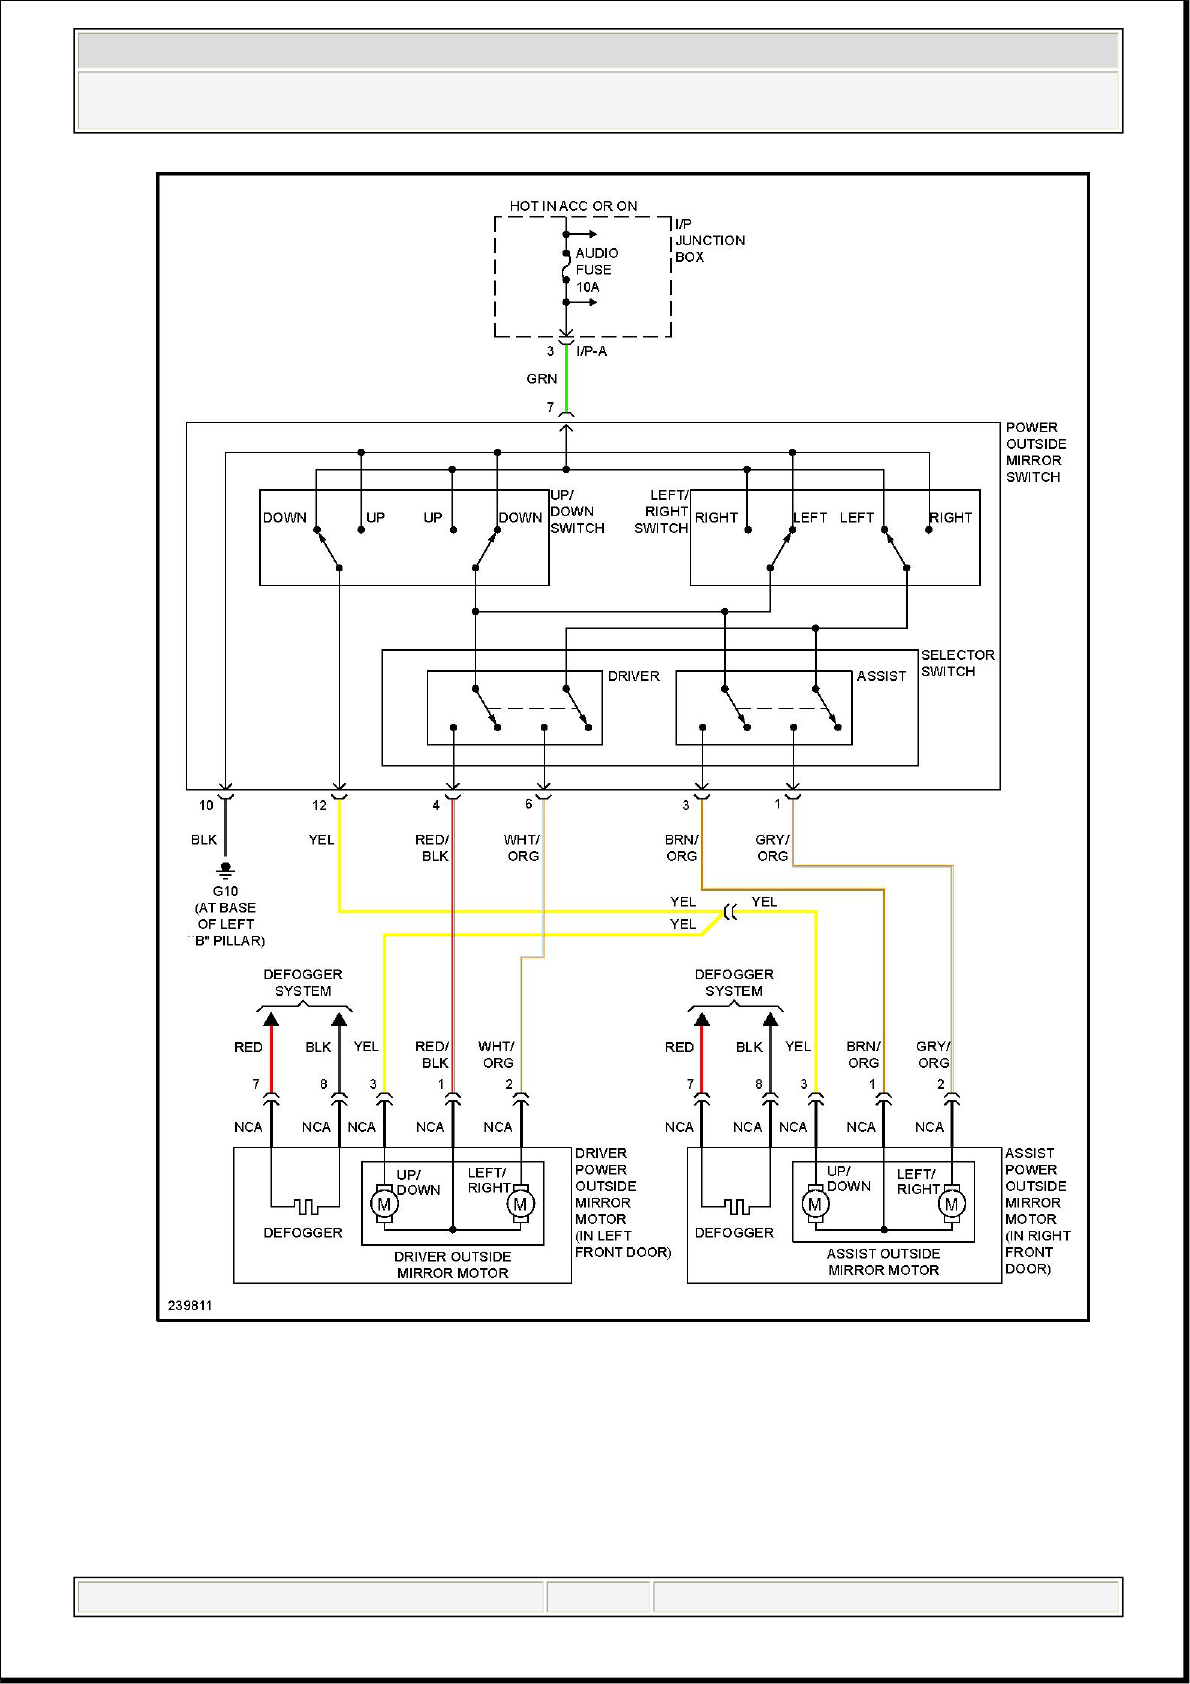 1998 Hyundai Accent Wiring Diagram Library Excel 93 Fuse Box Misc Document Pdf